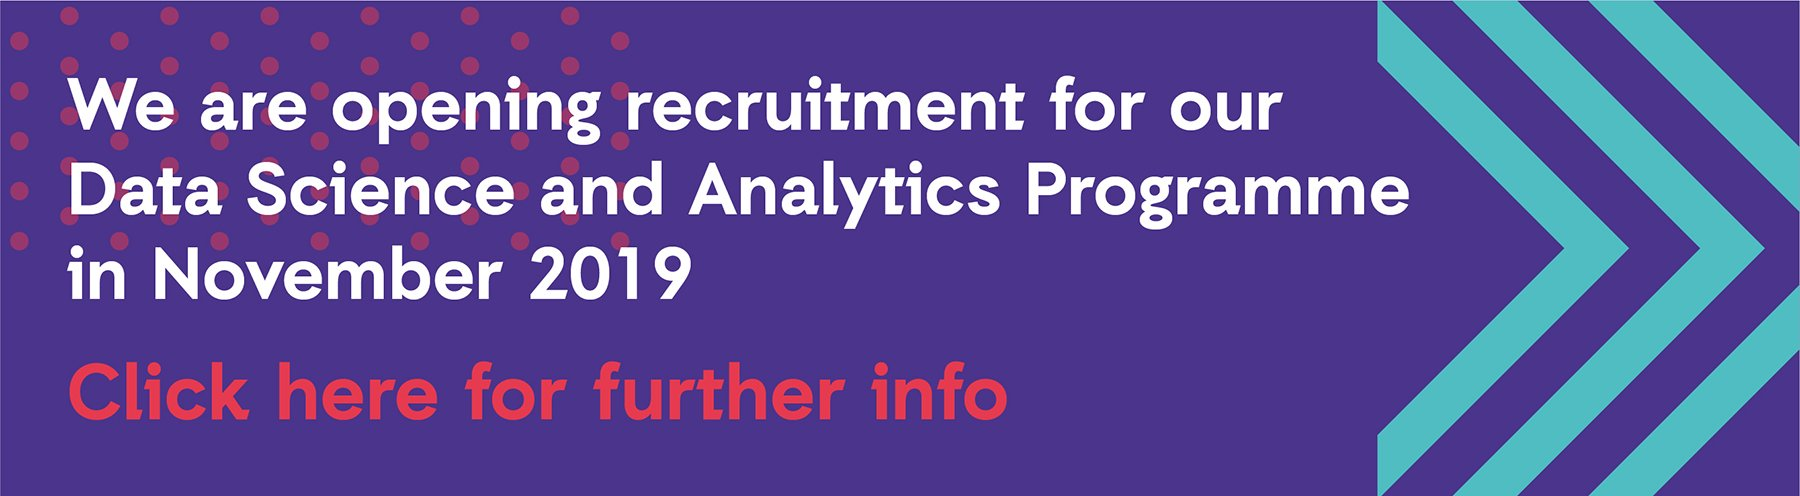 We are opening recruitment for our Data Science and Analytics Programme in November 2019